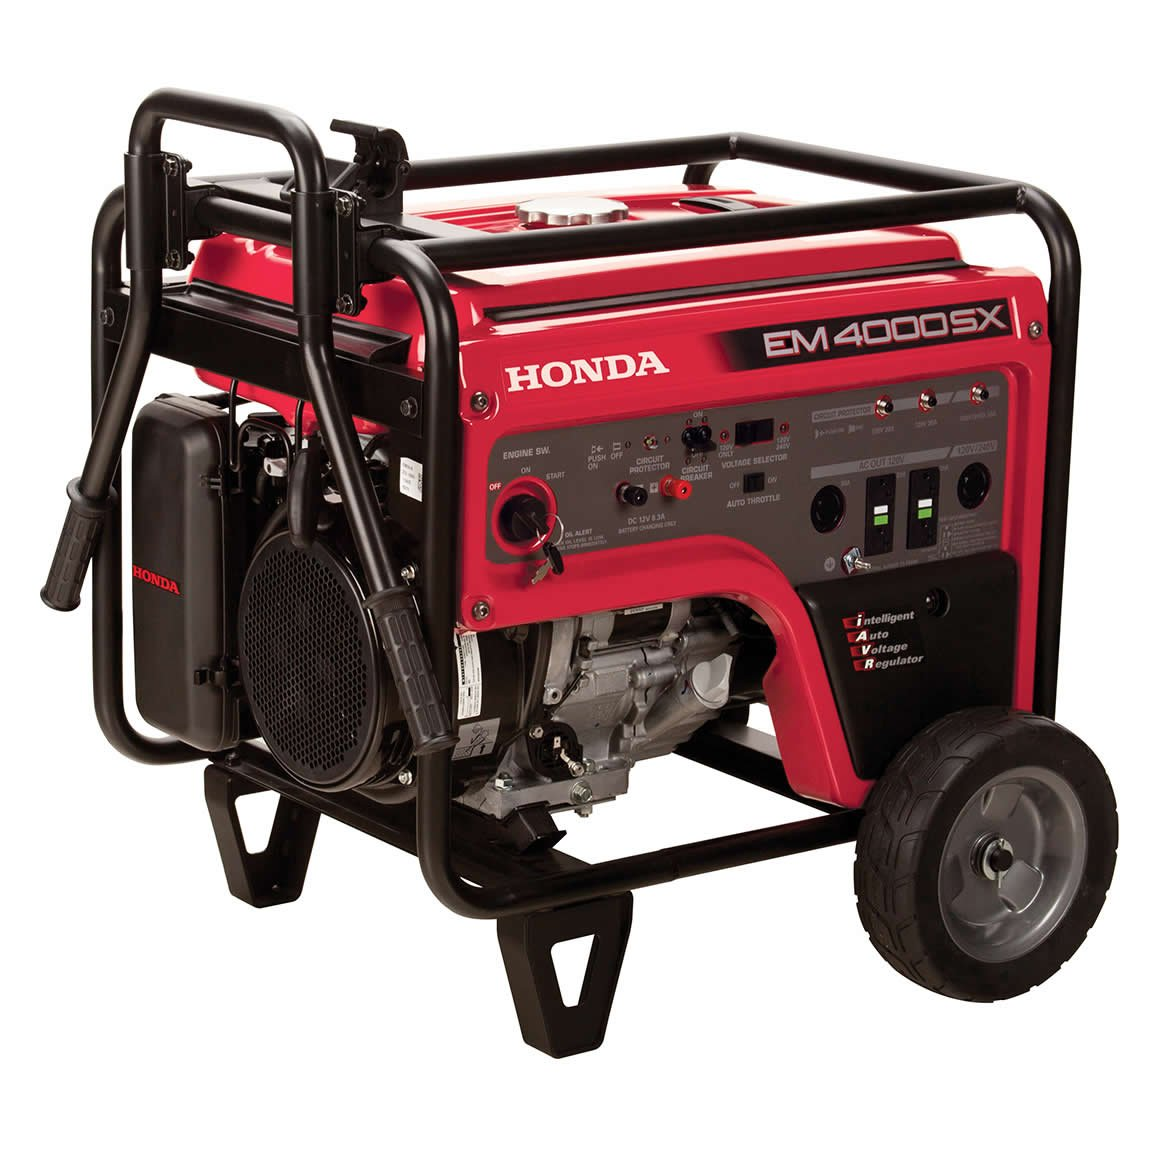 hight resolution of get quotations honda power equipment em4000sxat 4 000w portable generator with iavr technology carb